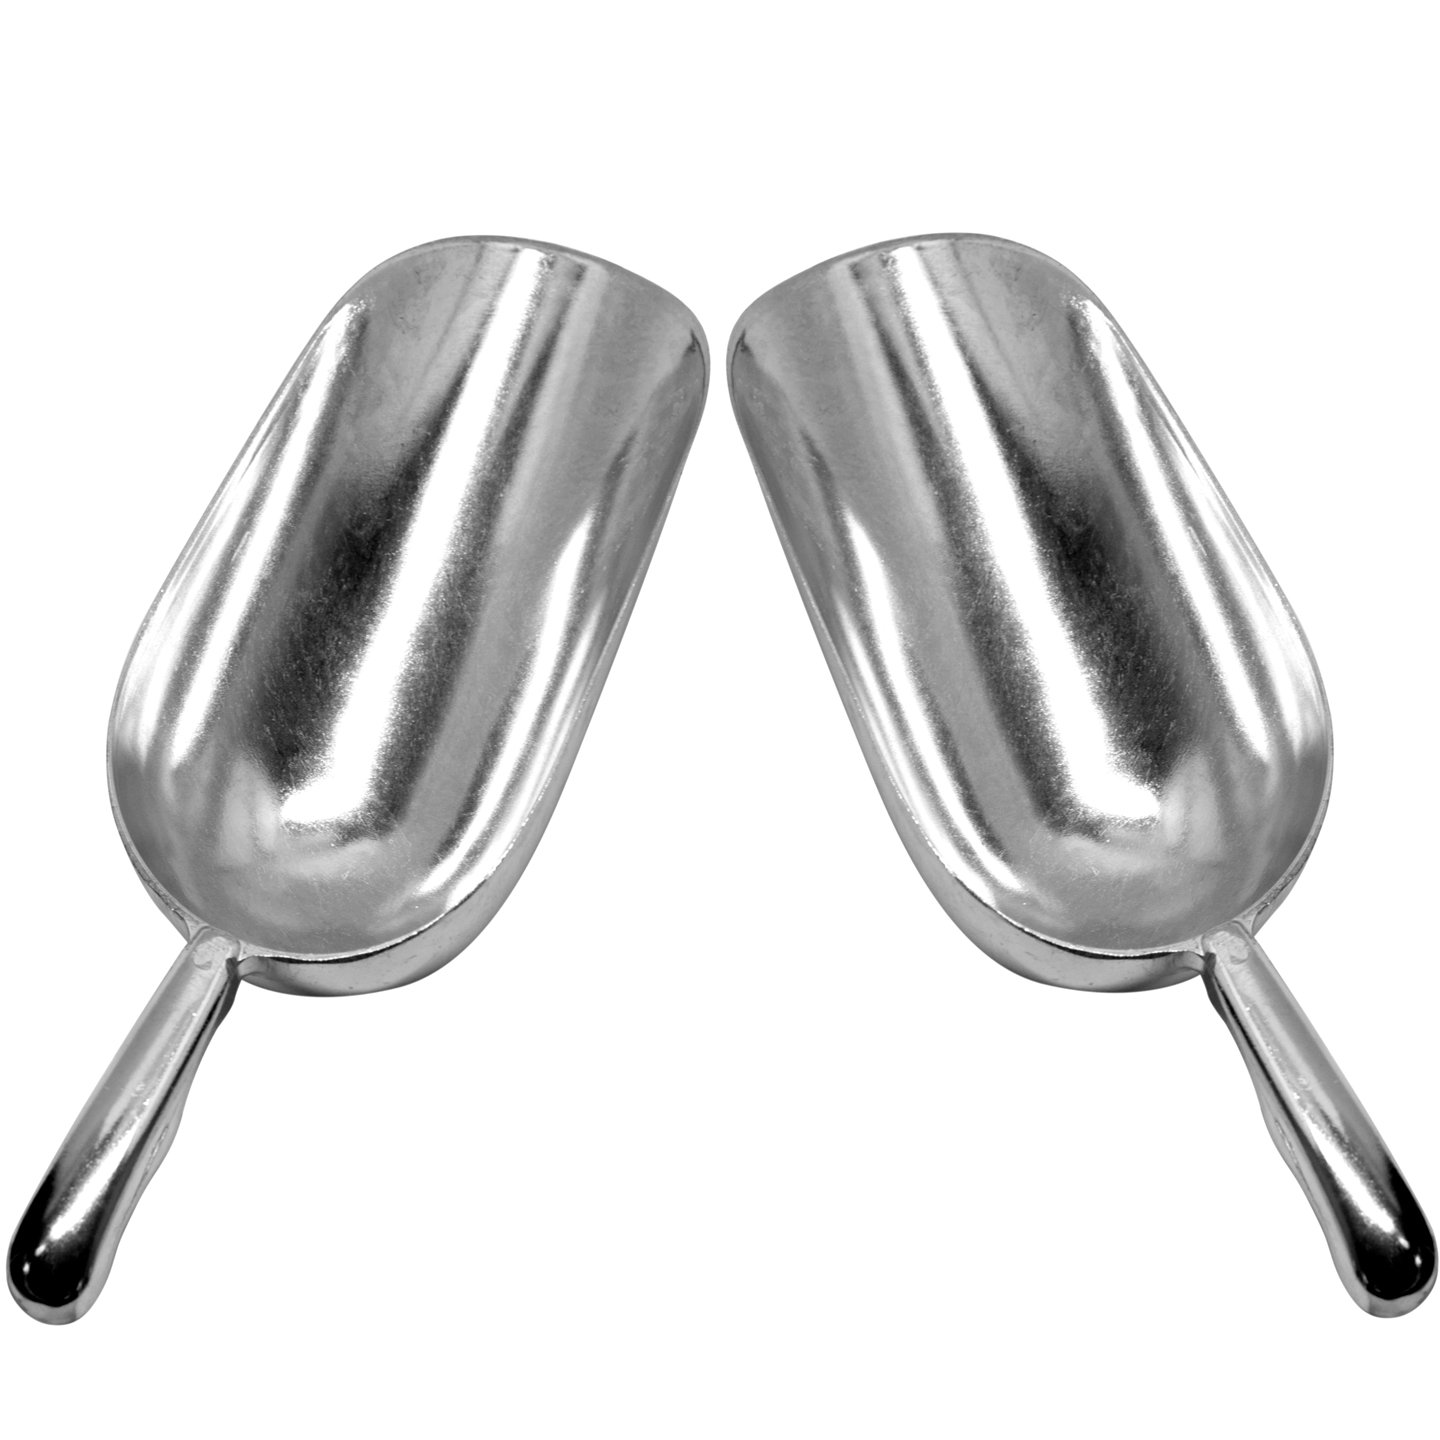 Set of 2 Large (38 Oz.) BonBon Aluminum Ice Scoop, Dry Goods Bar Scooper High Grade Commercial Scoop